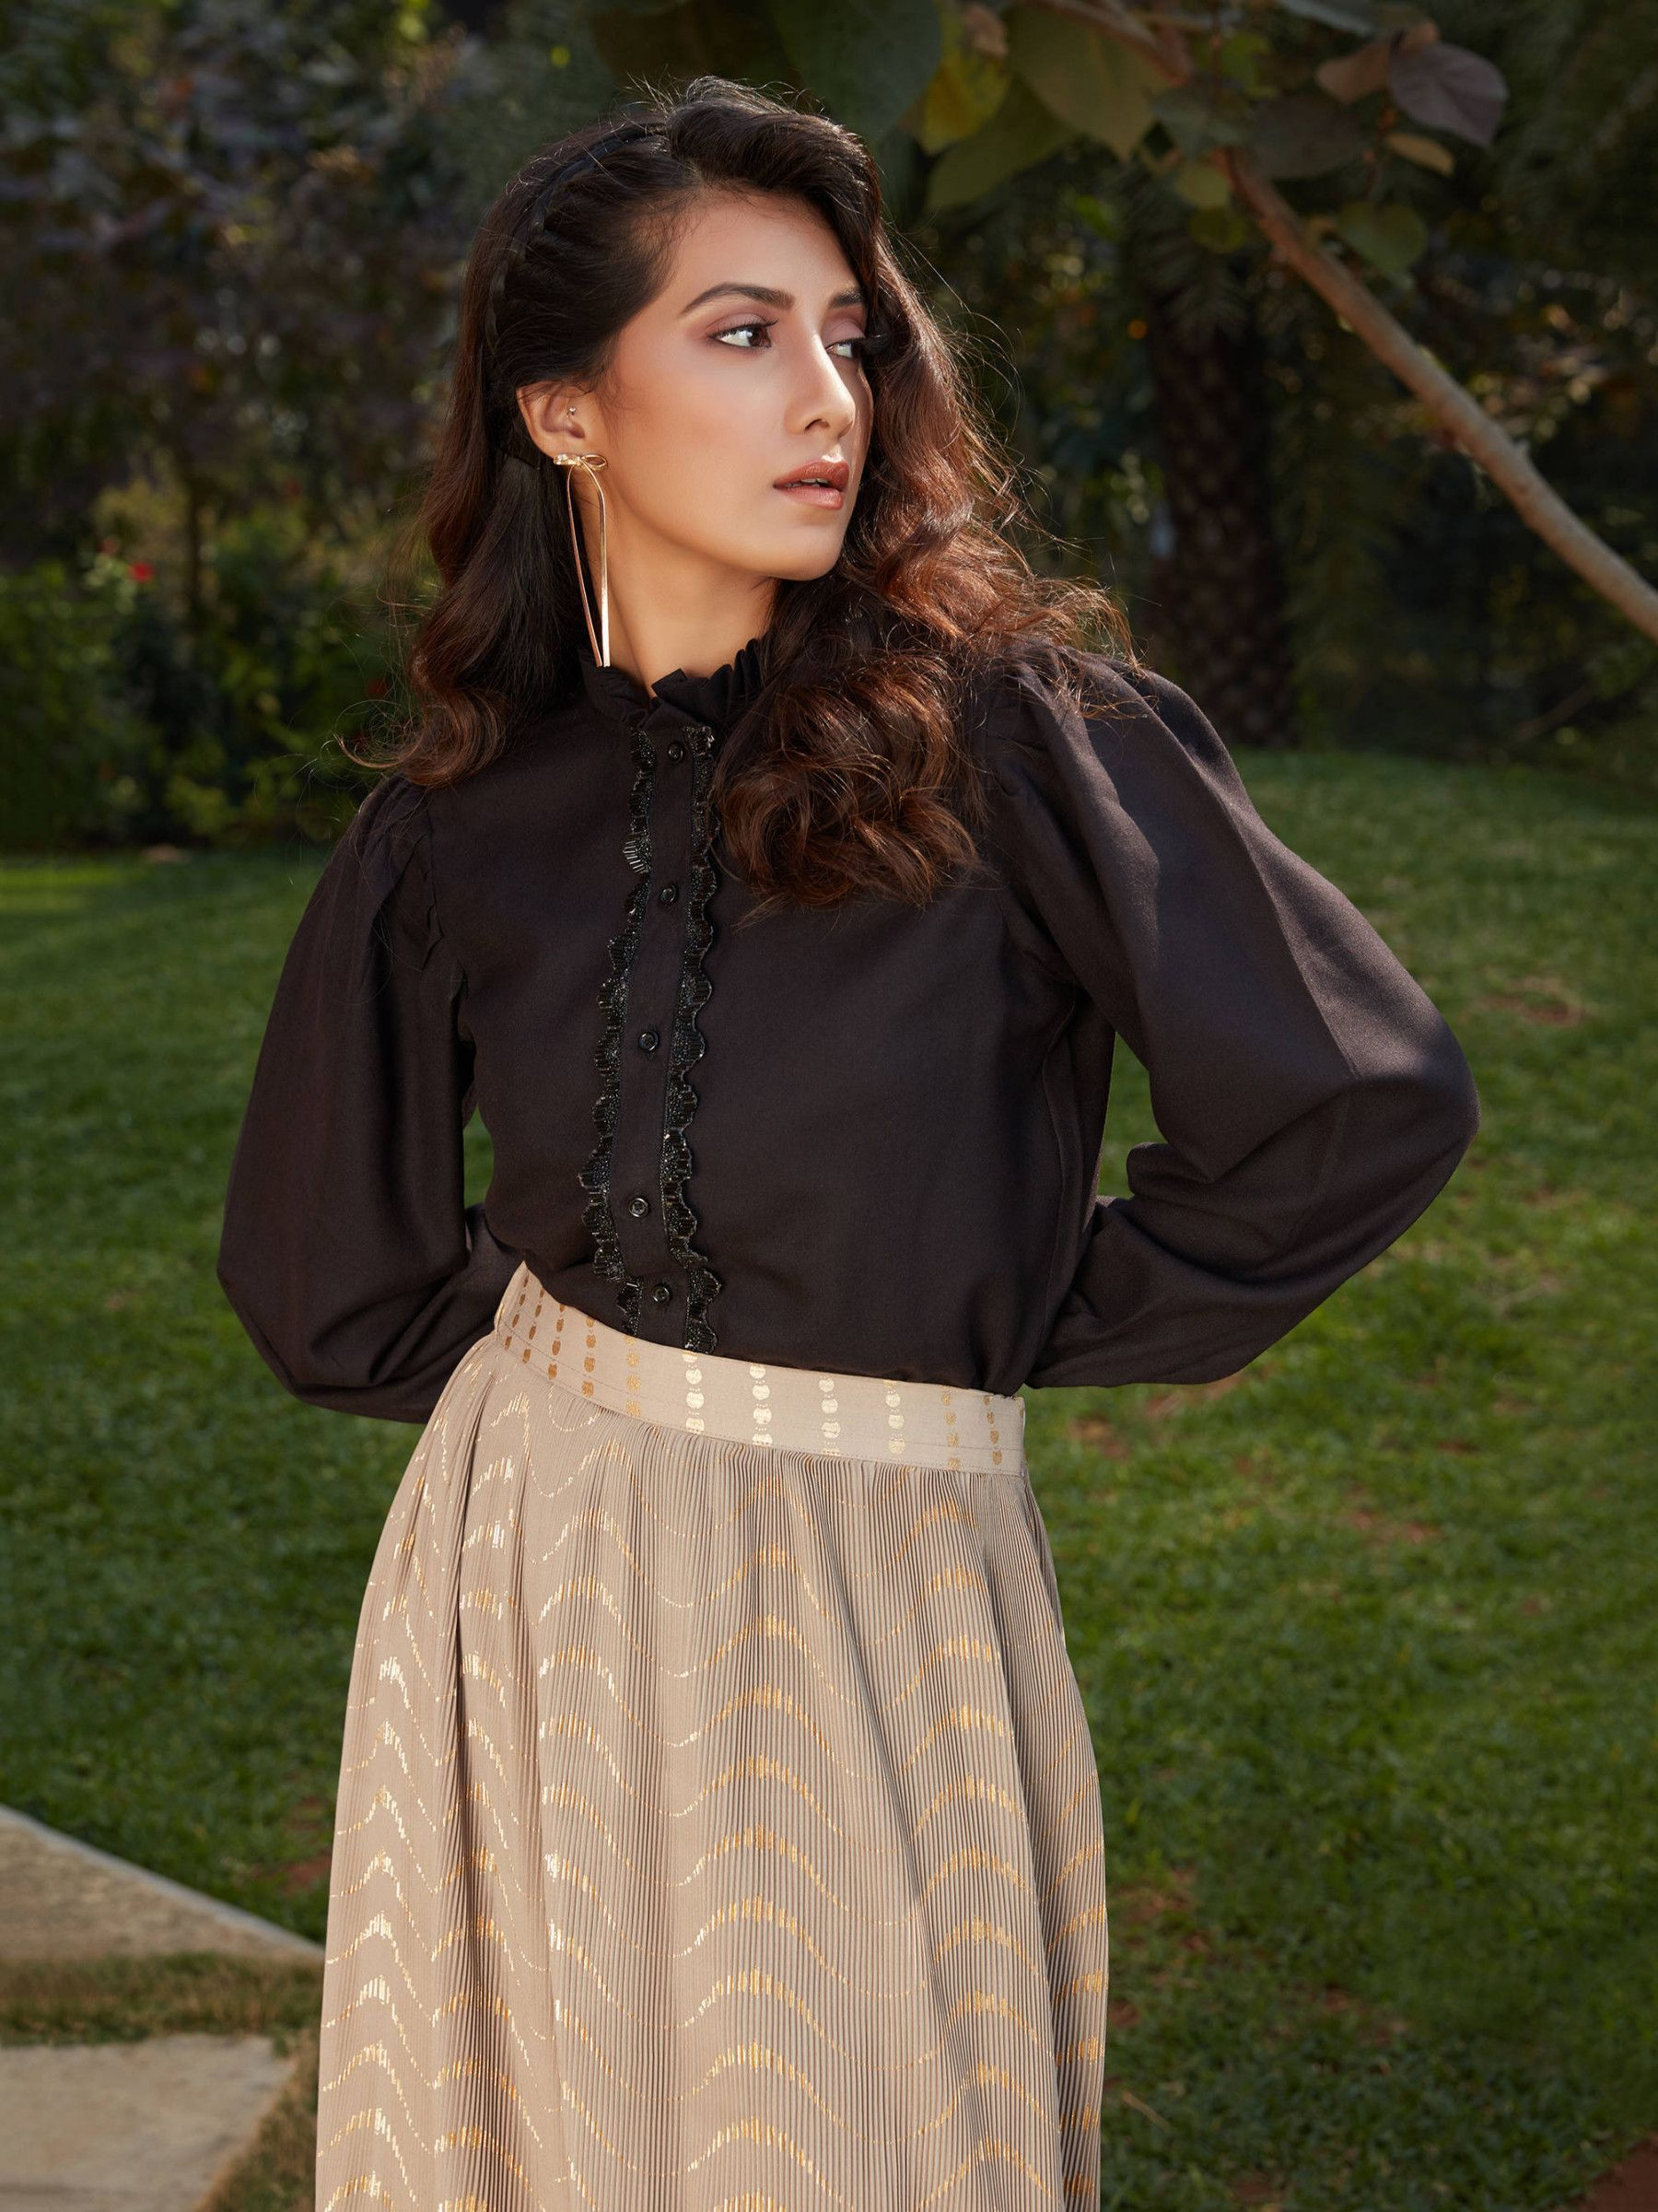 Black Cream Imported Indo Western Ready To Wear Skirt With Crop Top